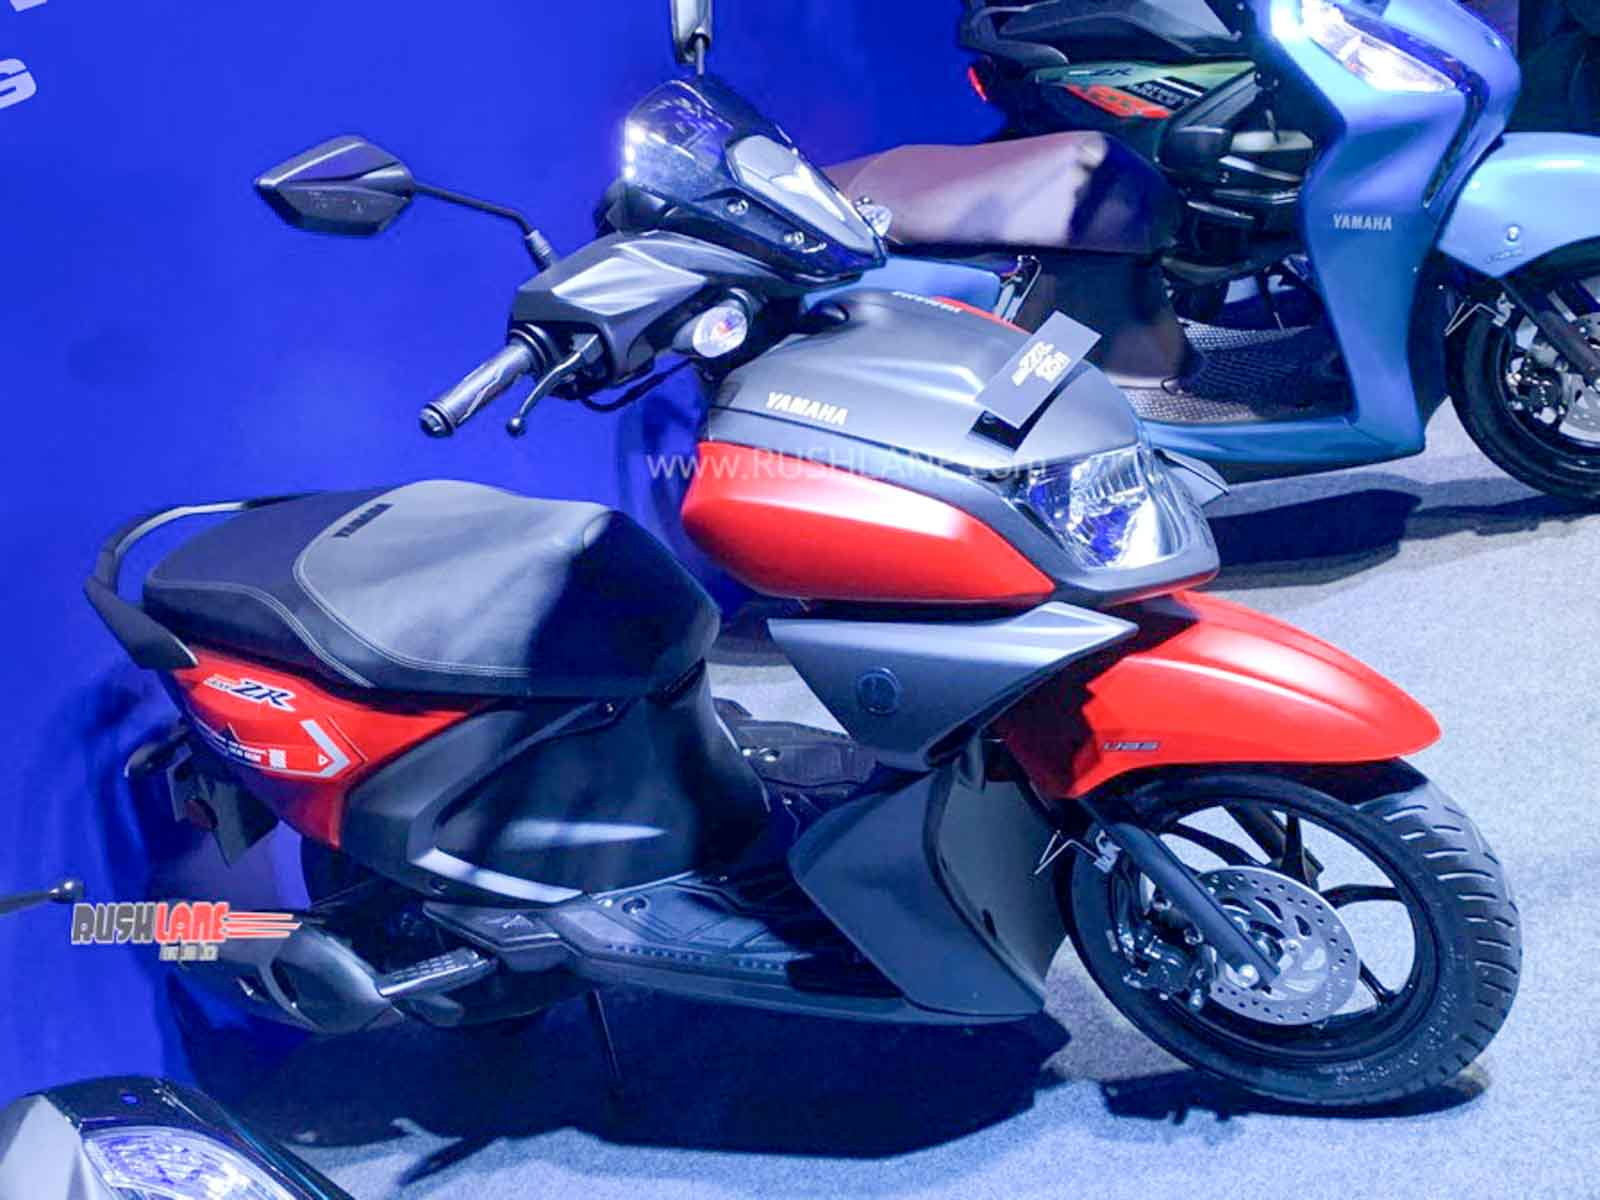 2020 Yamaha RayZR BS6 scooter